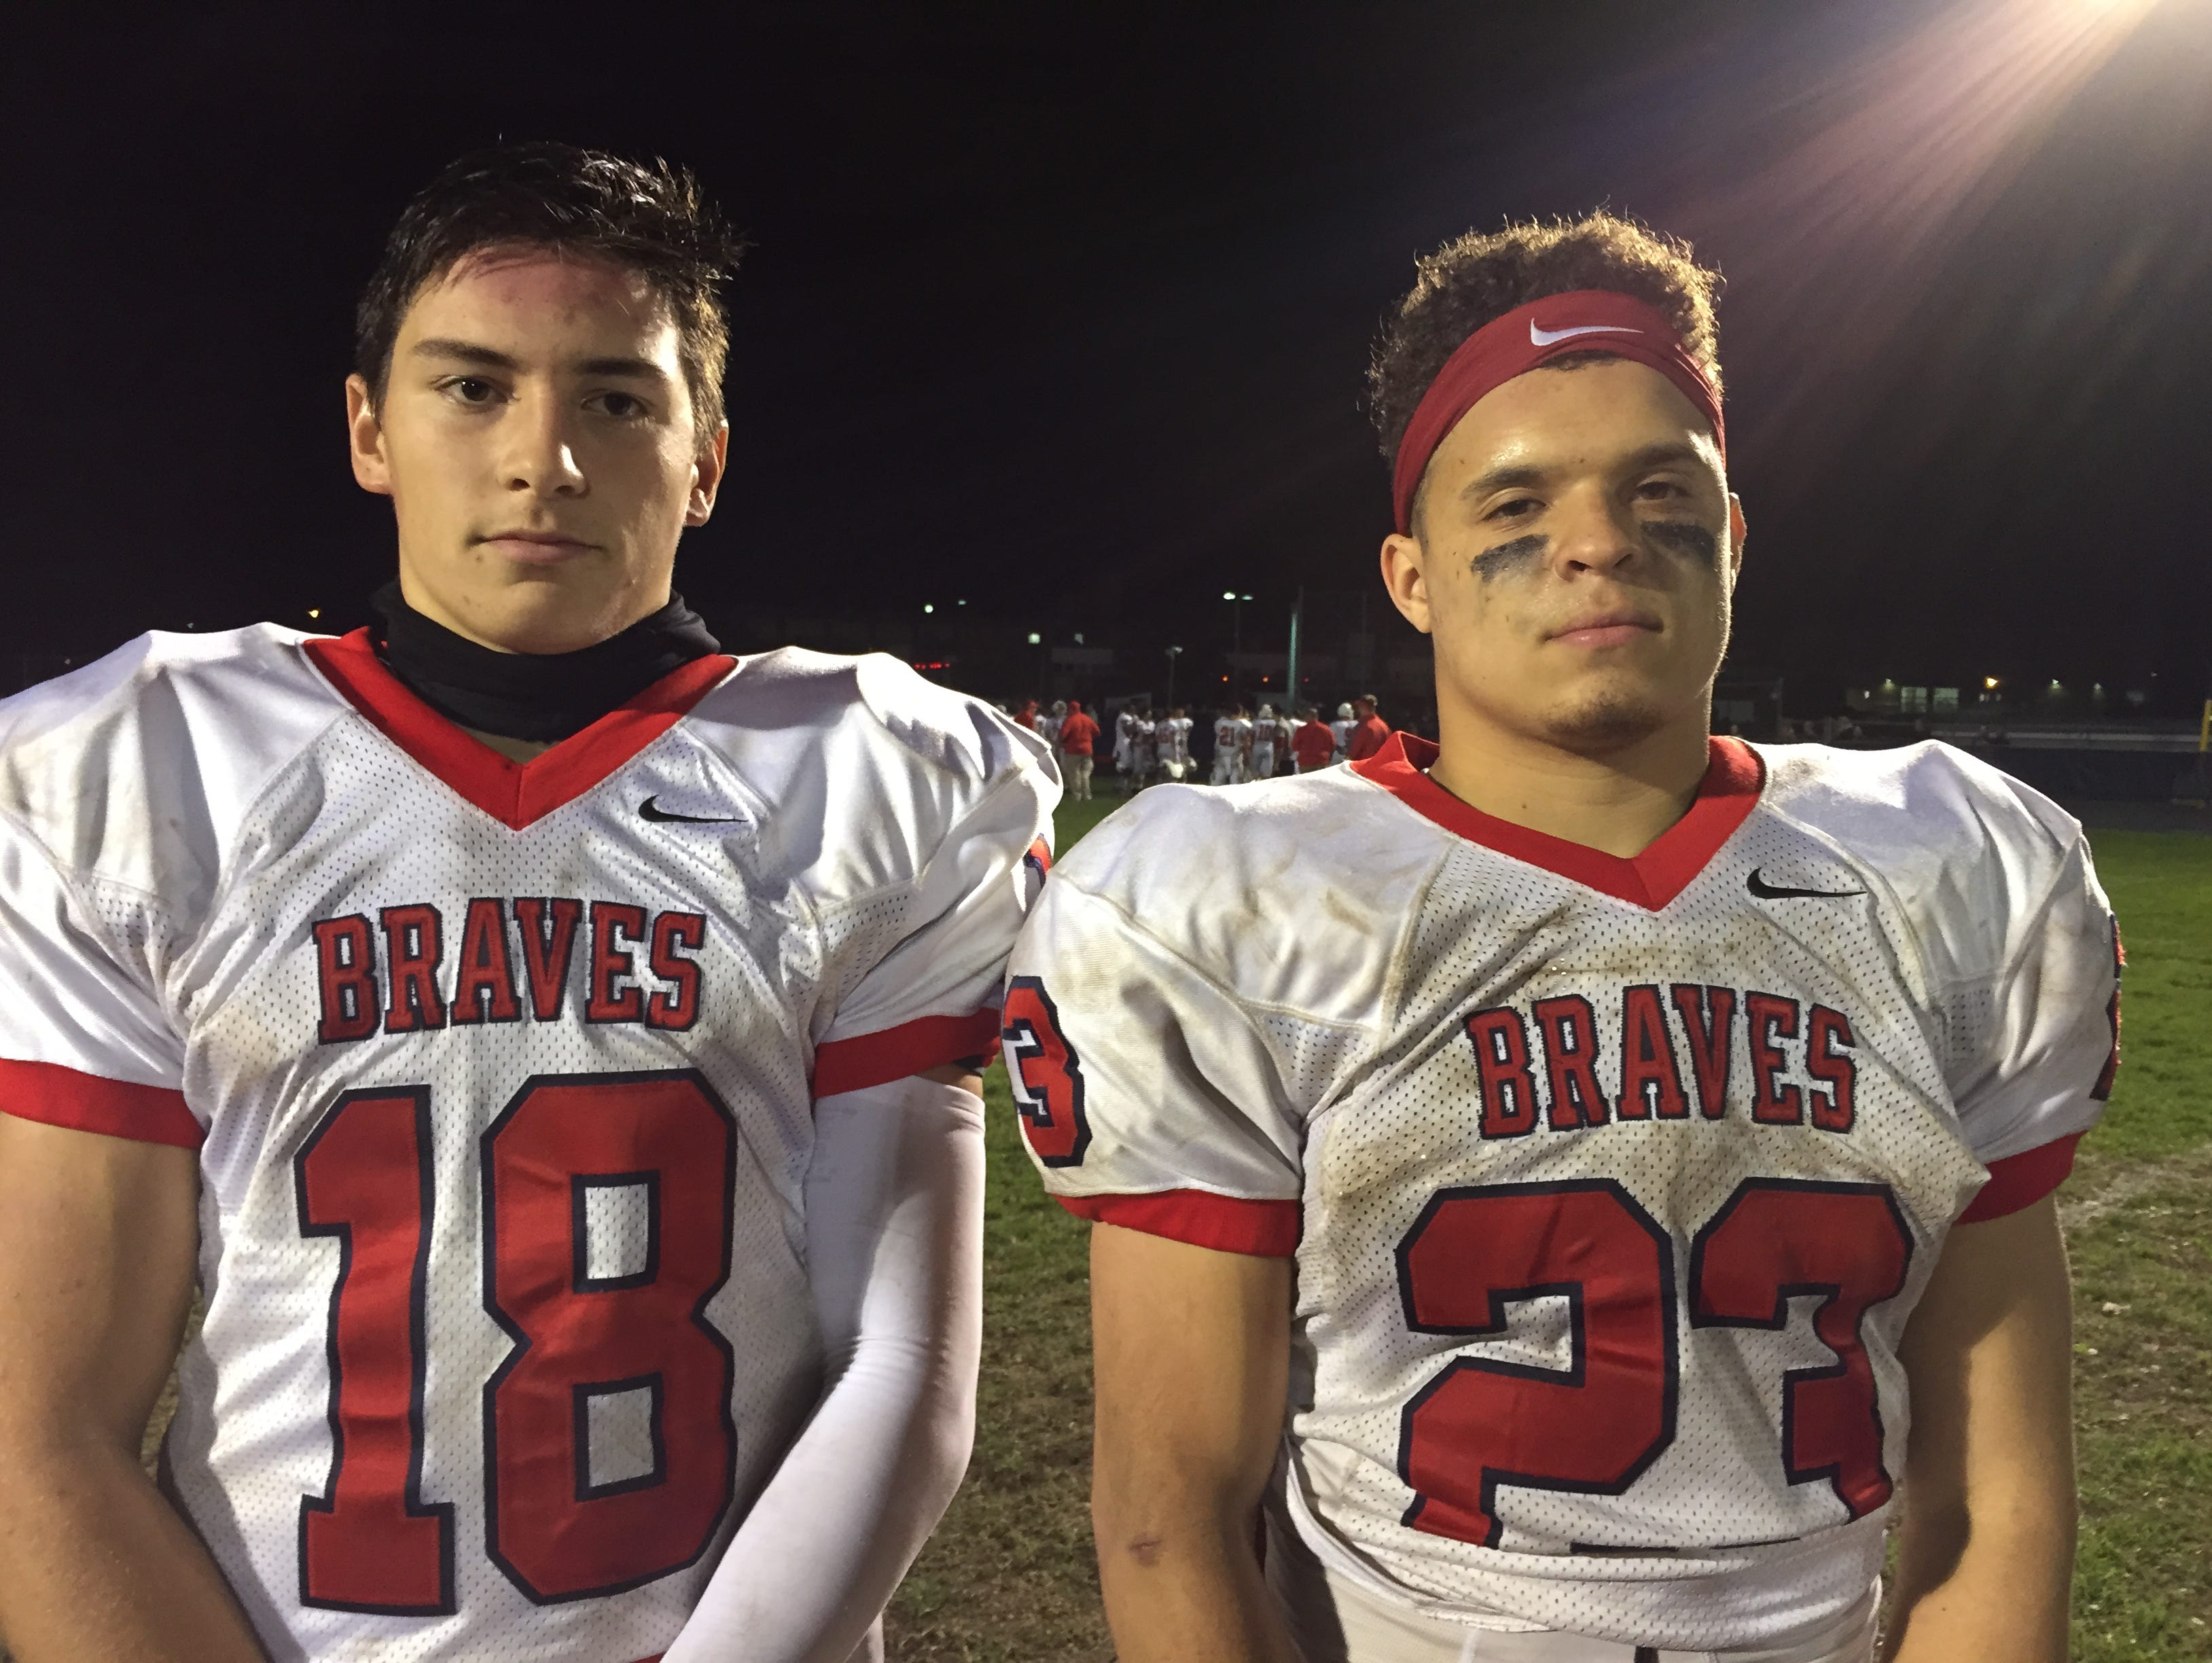 Quarterback Cody Wiener (left) and running back Marcus Salinas were all business after Manalapan rolled up Howell 42-0.